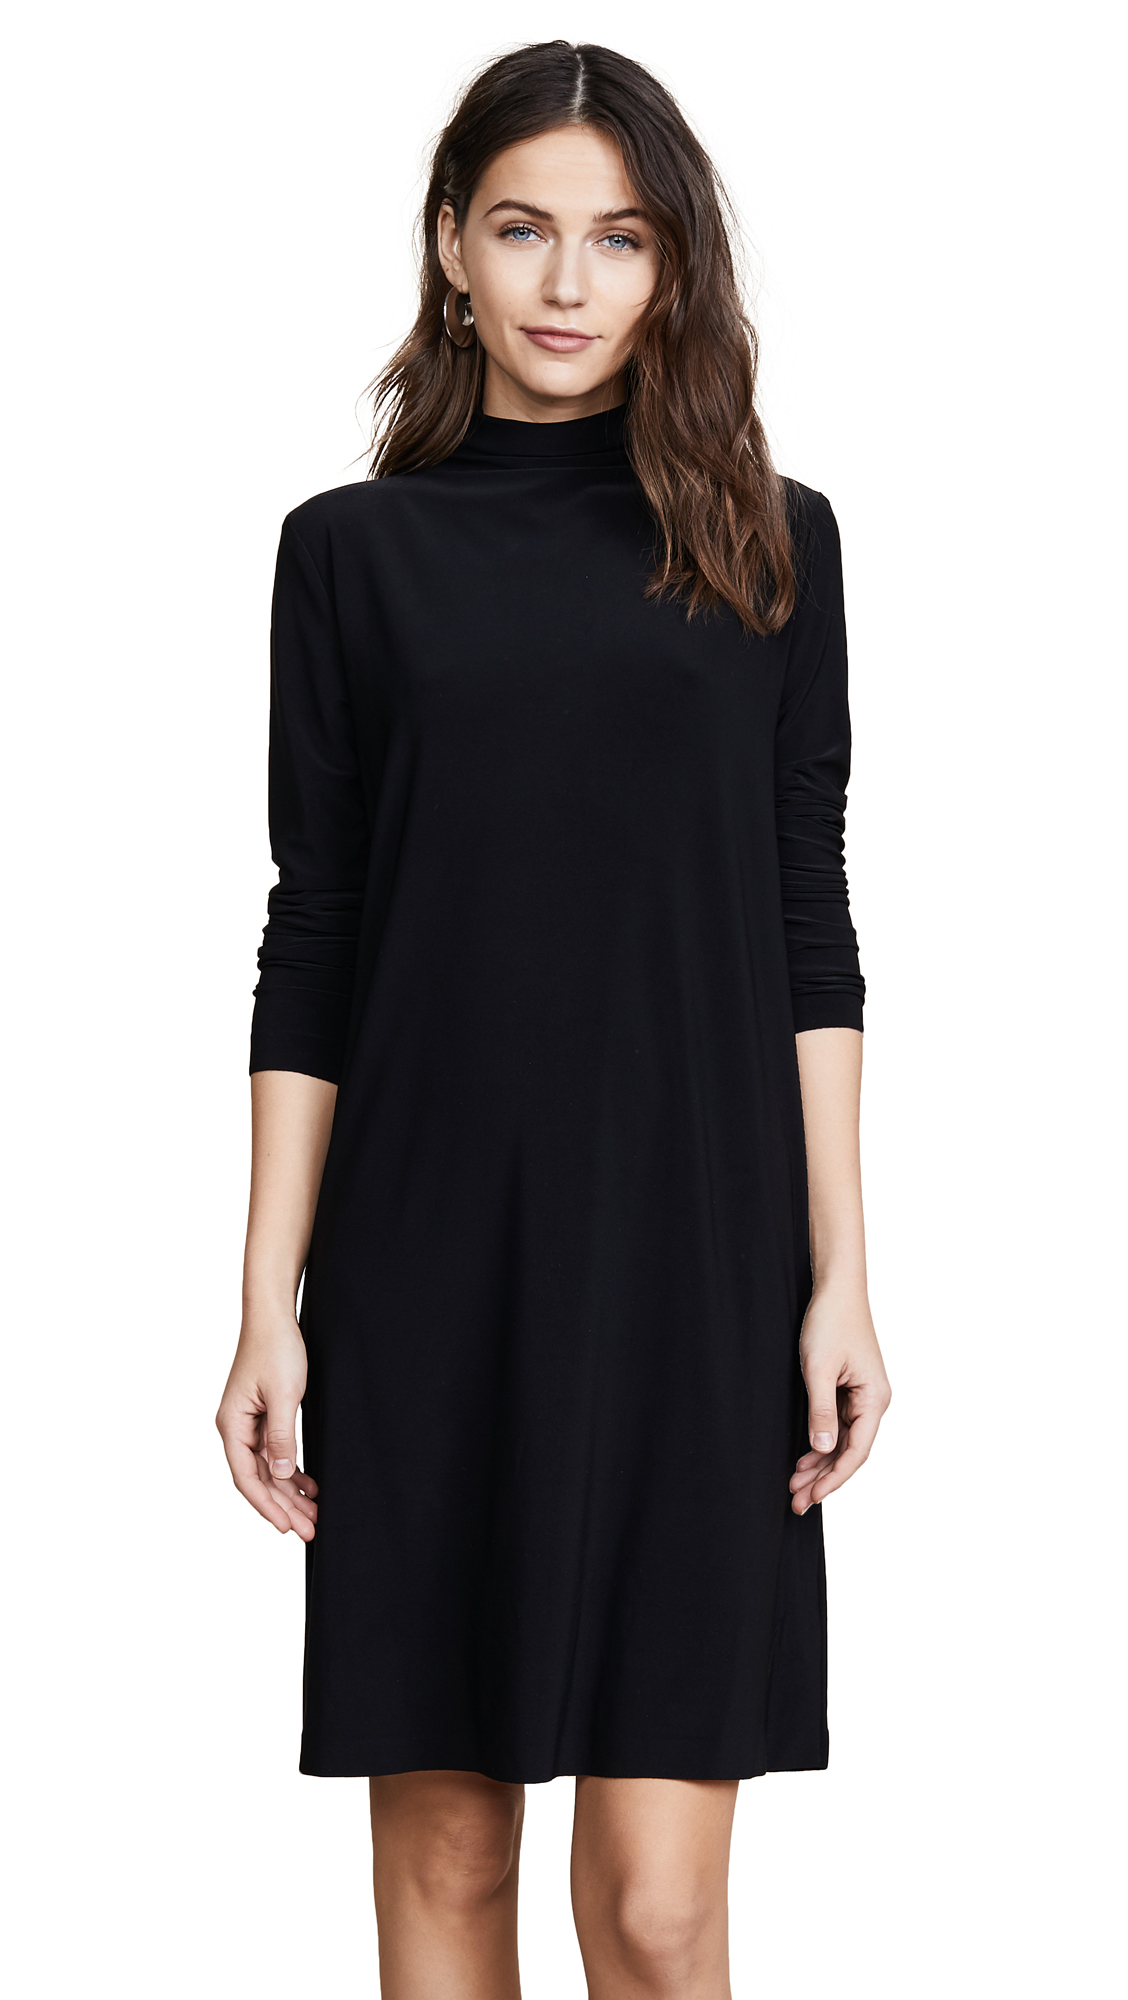 Norma Kamali Kamali Kulture Turtleneck Dress In Black